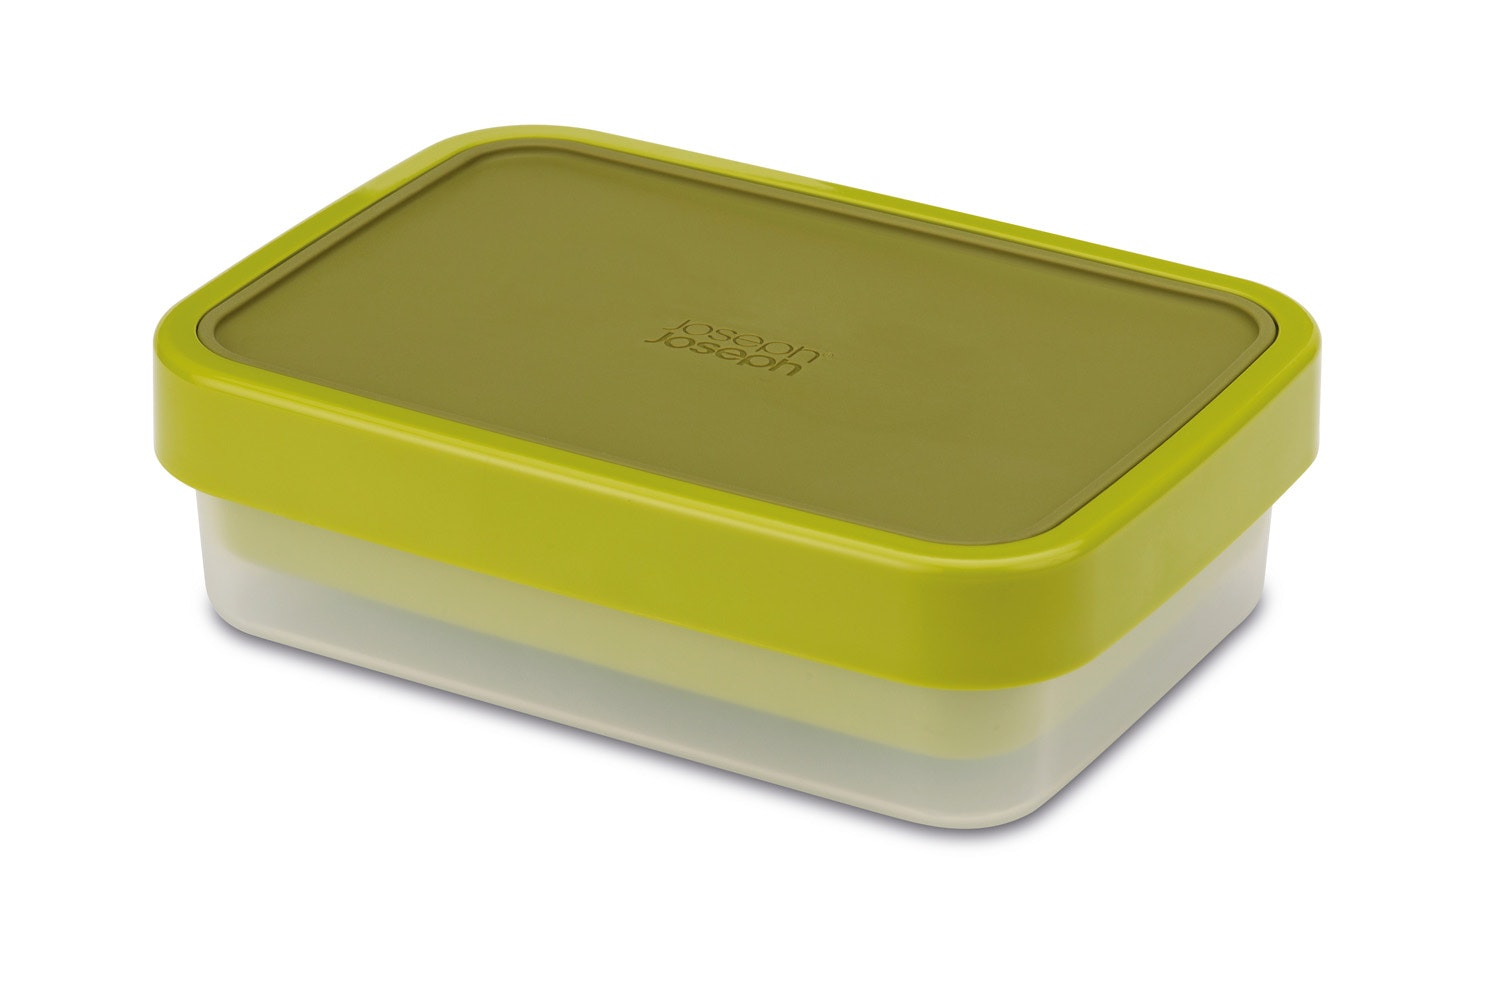 Joseph Joseph 2-In-1 Lunchbox